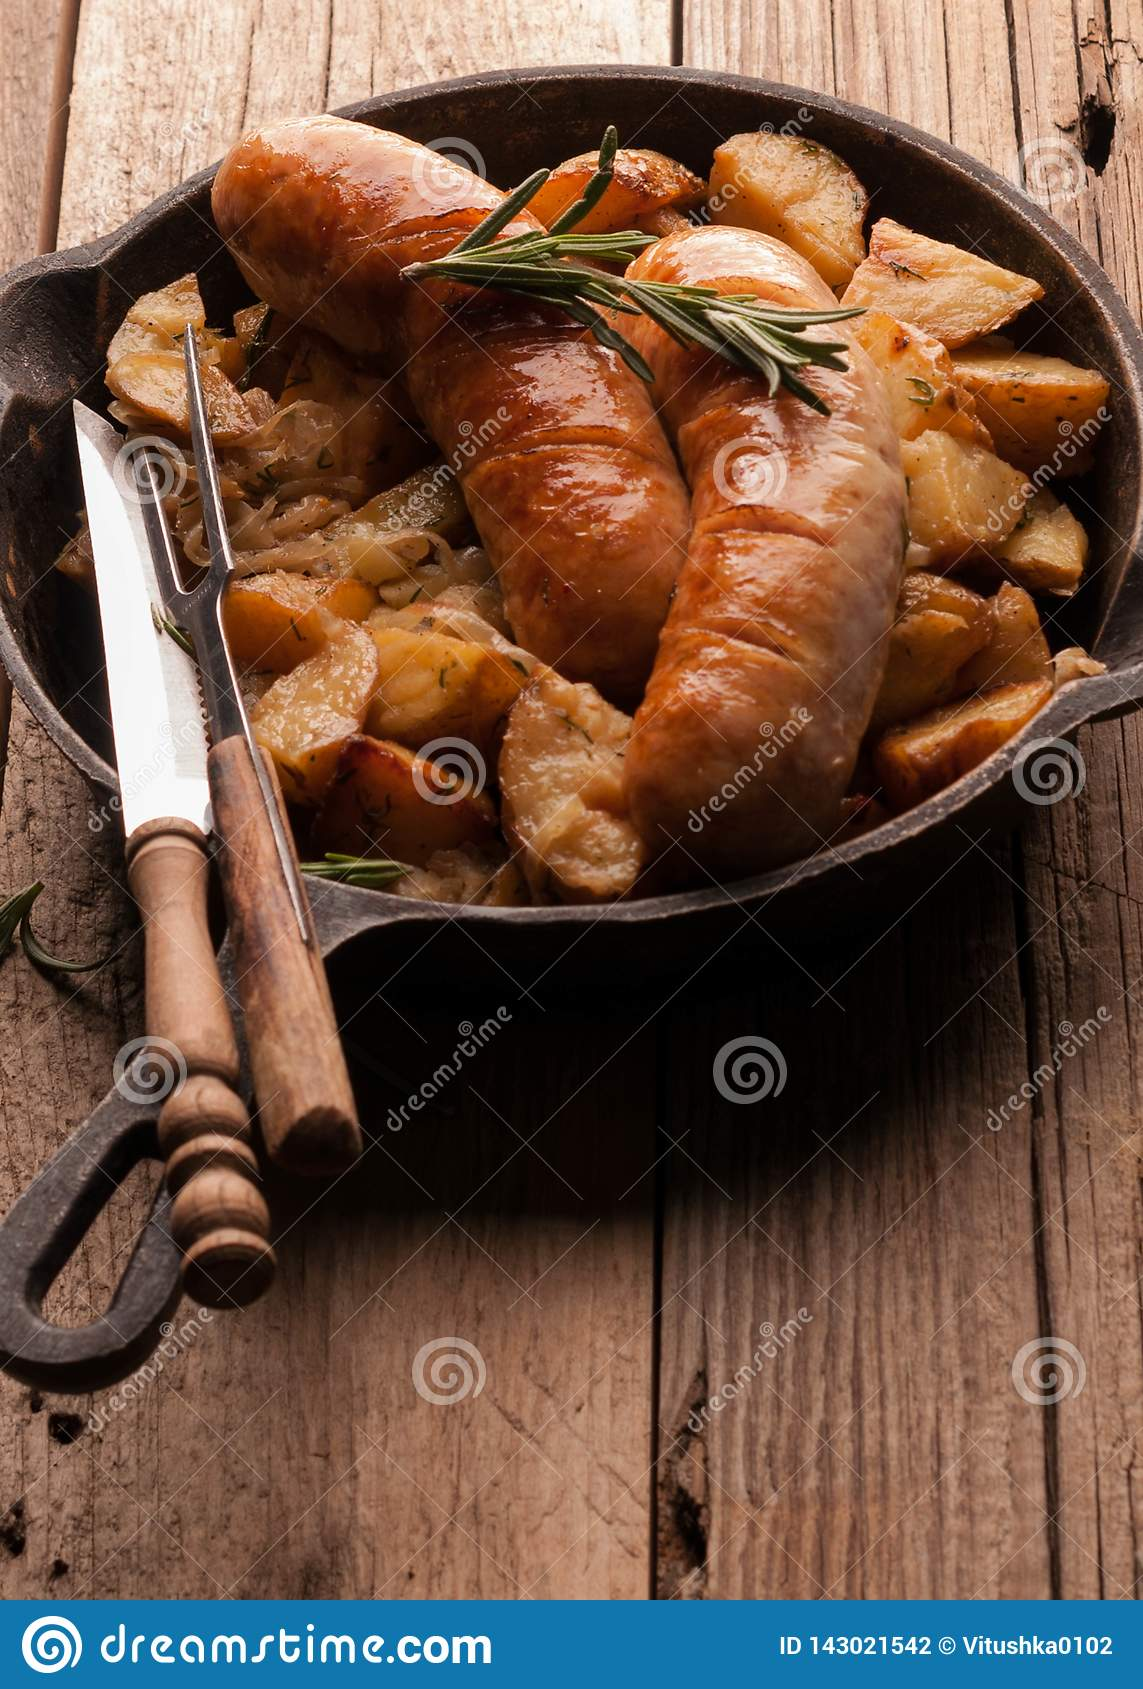 Pan with fried potatoes and grilled sausages, green rosemary, fork and knife